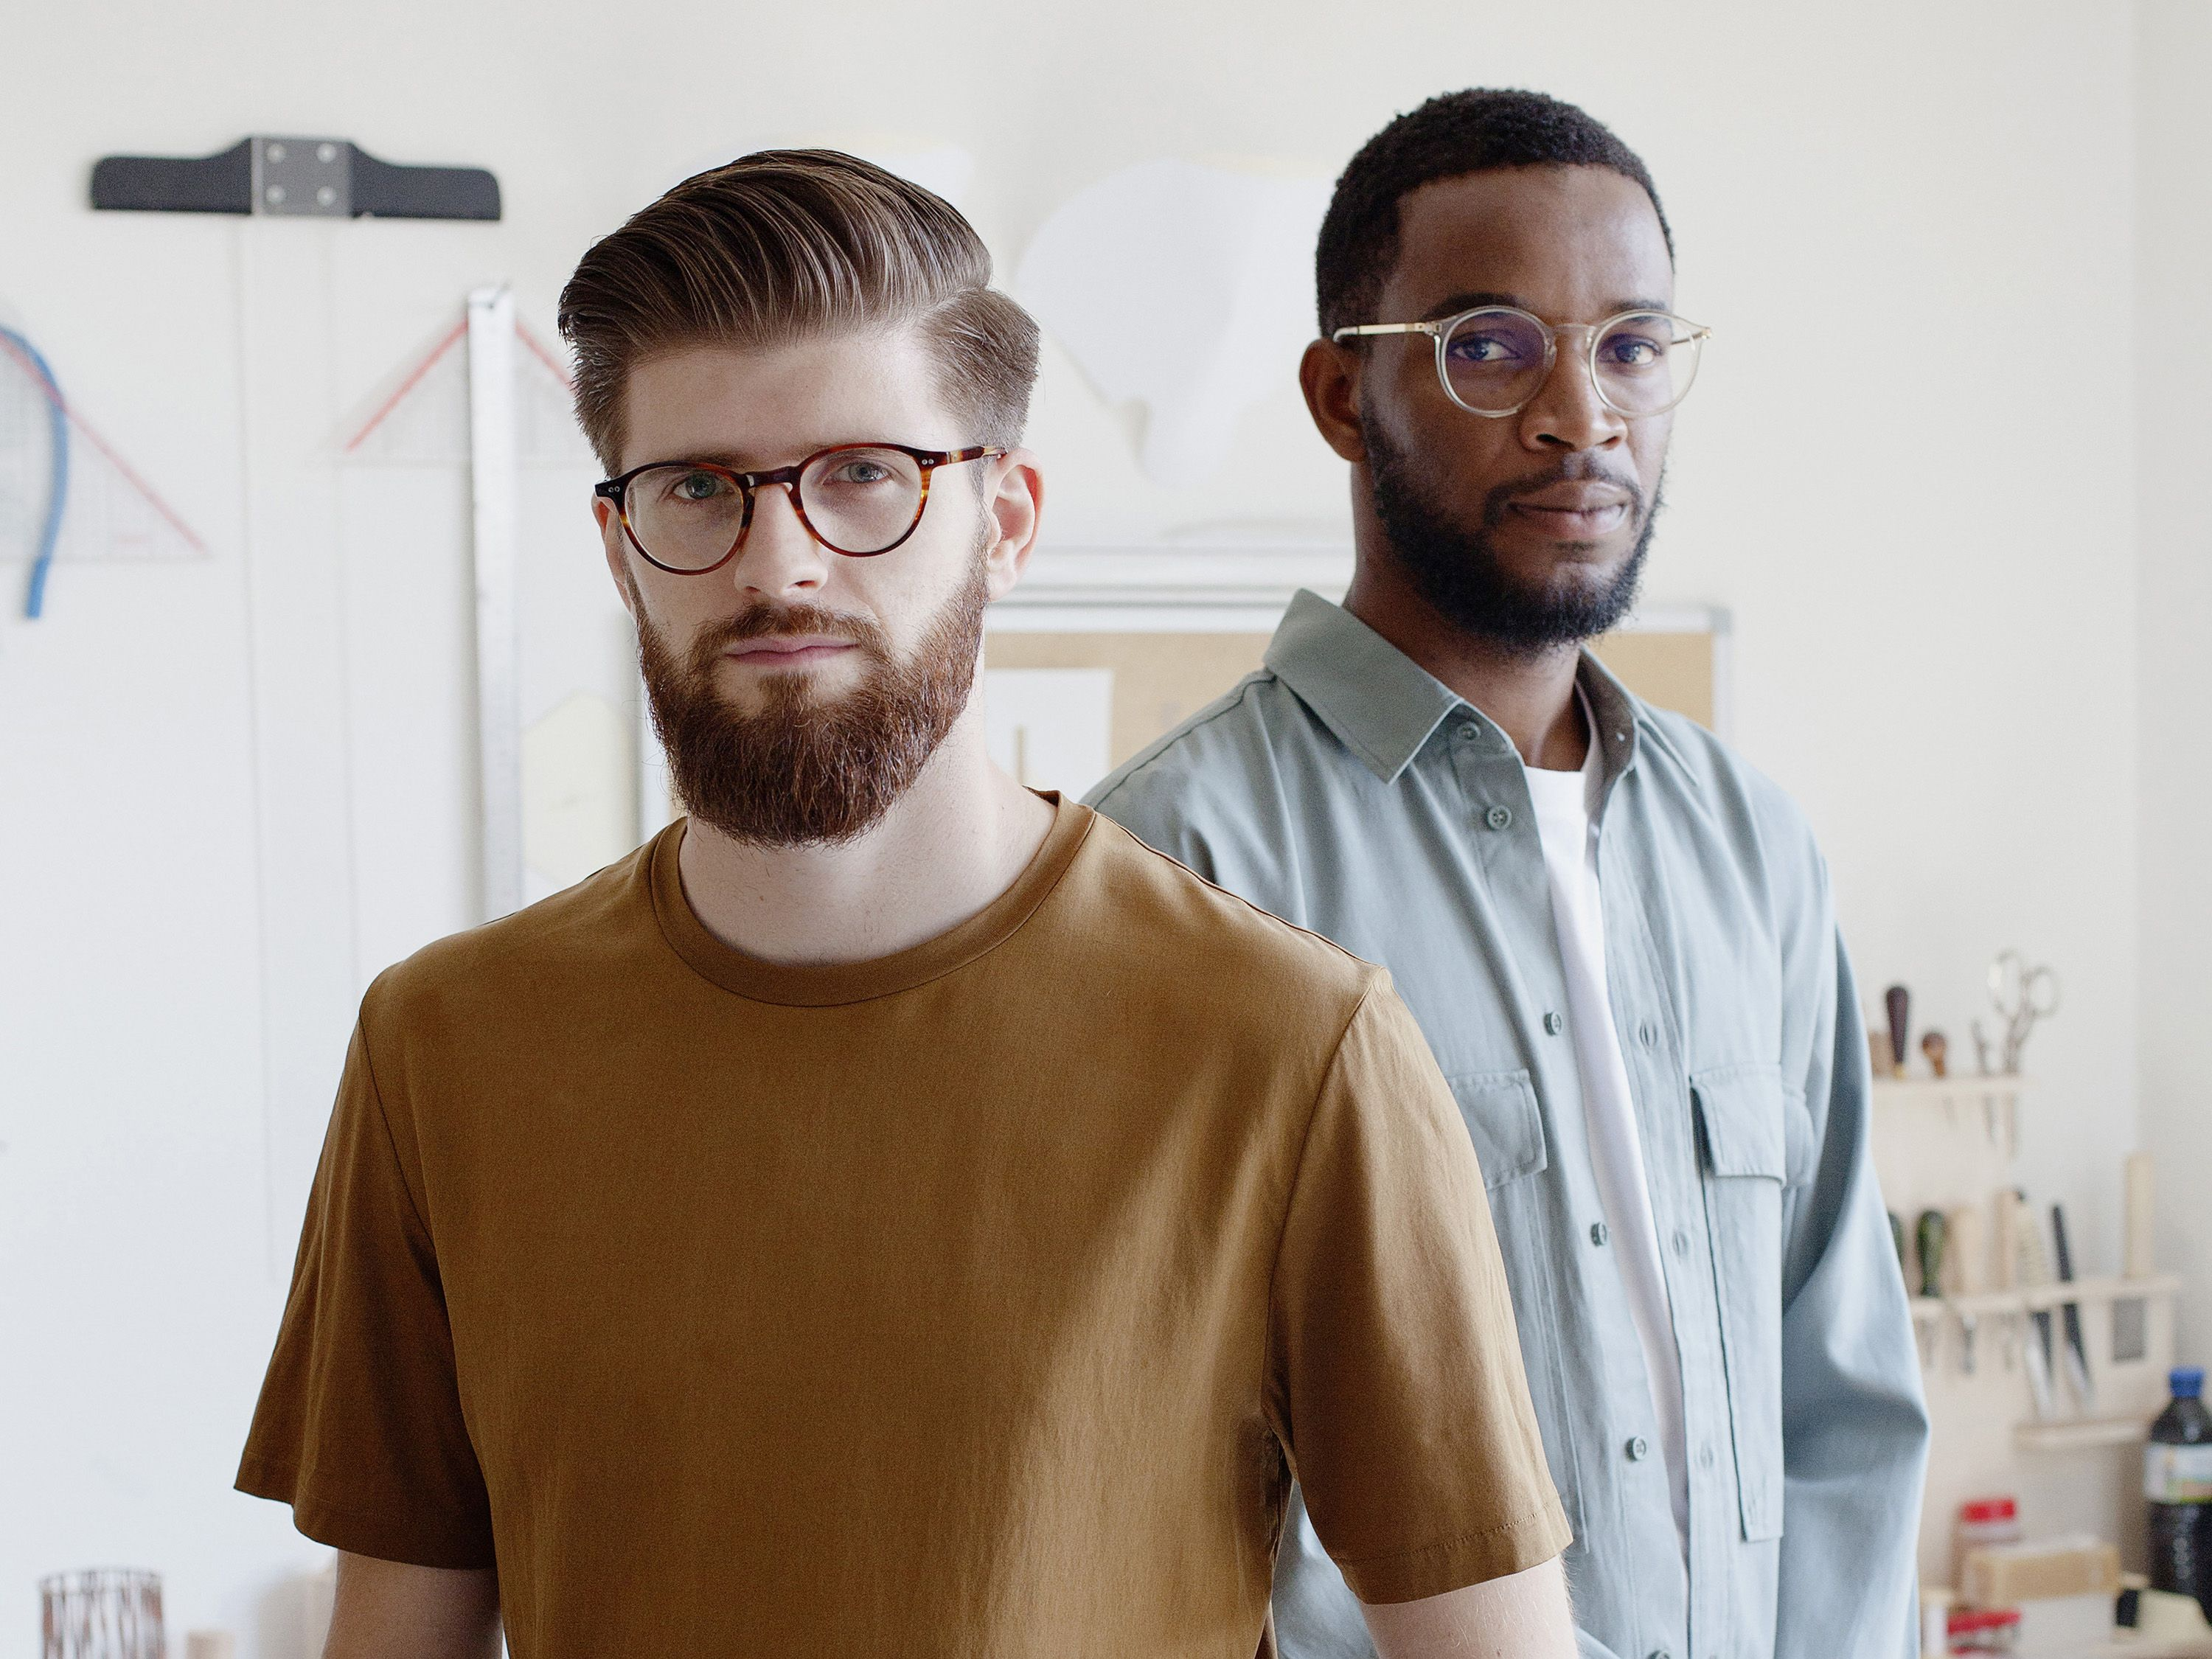 The Anthropological Approach to Design with Dach & Zéphir